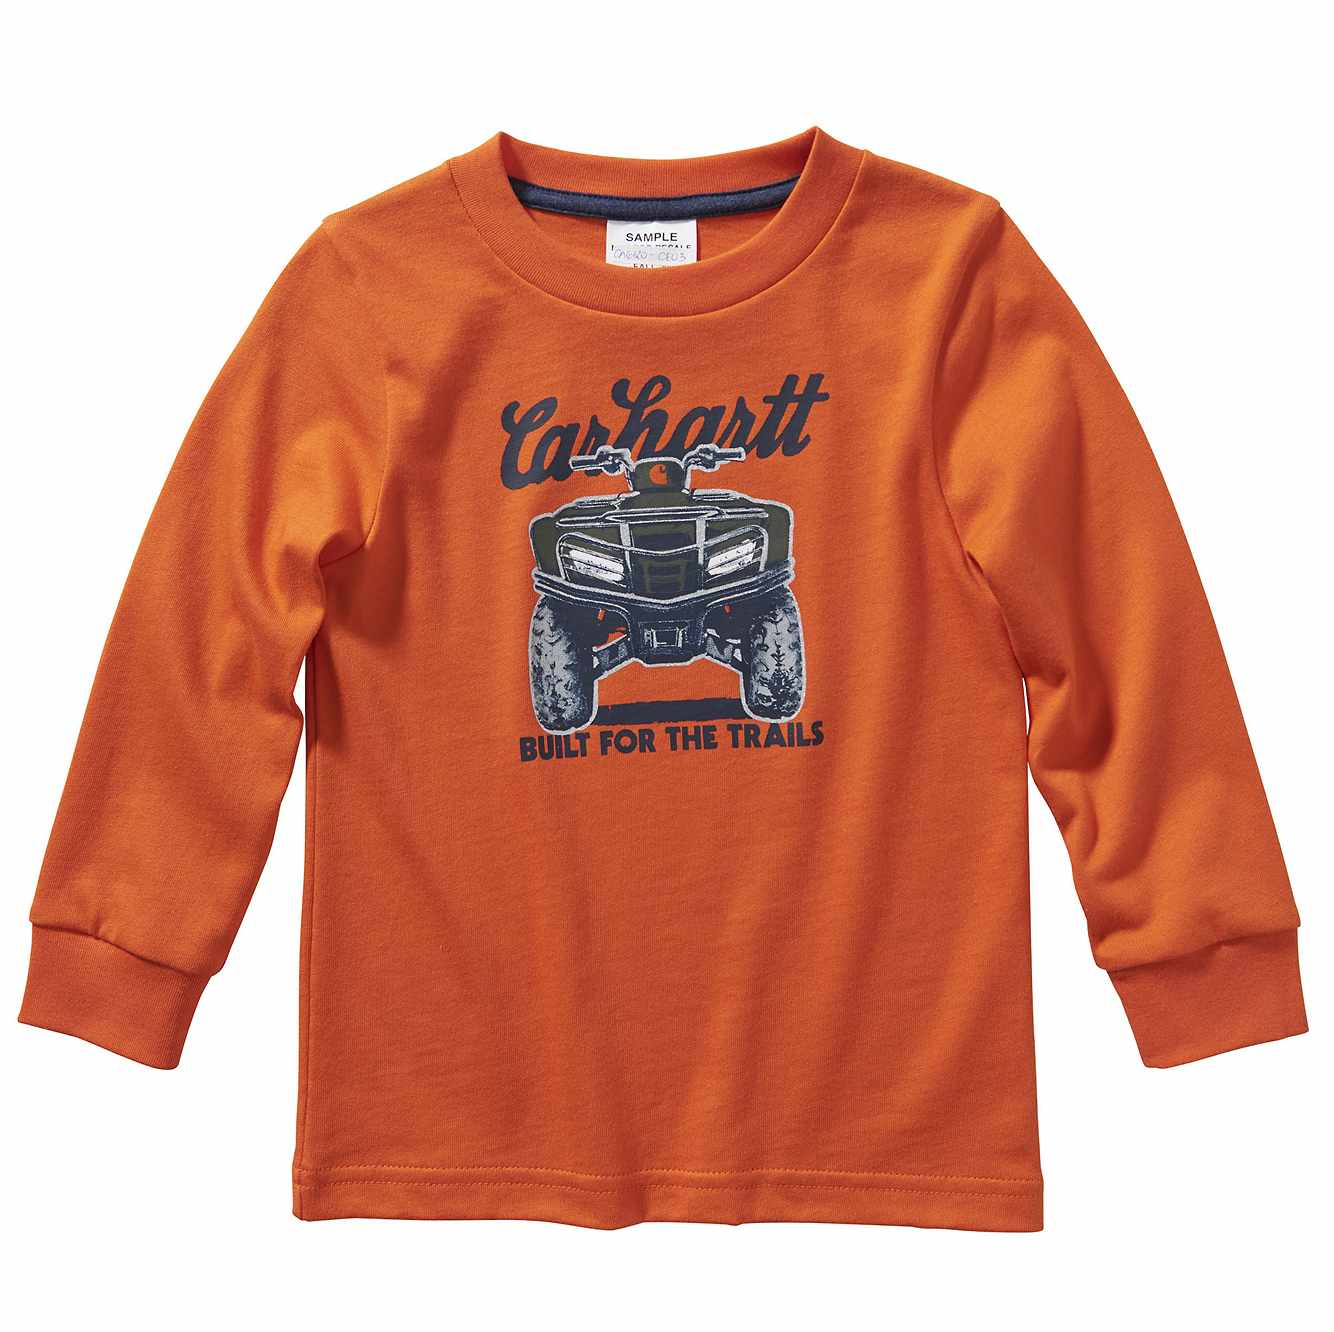 Picture of Long Sleeve Built For The Trails Tee in Carhartt Blaze Orange